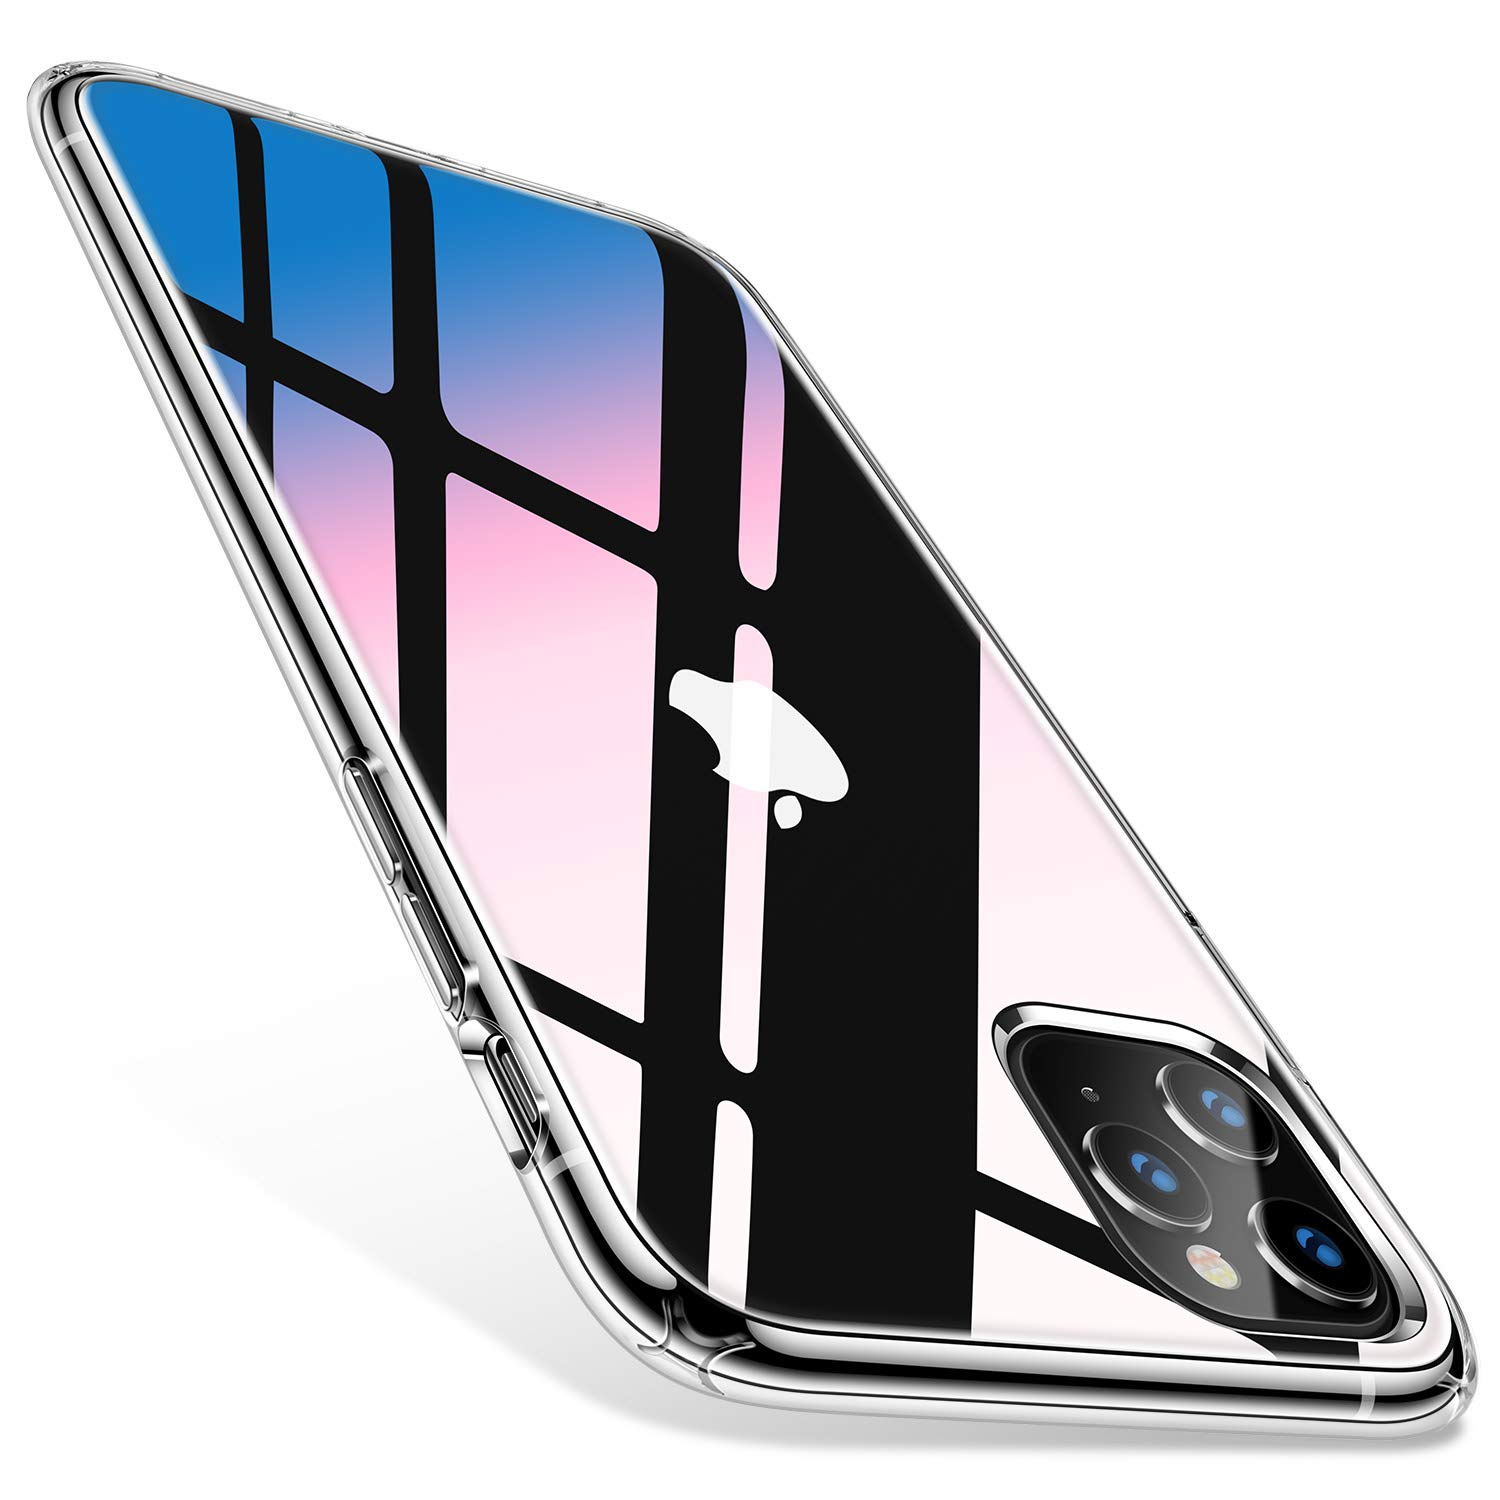 TORRAS Diamonds Clear iPhone 11 Pro Max Case, [Anti-Yellowing][Fully Protective] Slim Fit Shockproof Hard Plastic Back & Soft Silicone Bumper Phone Case Designed for iPhone 11 Pro Max, Transparent